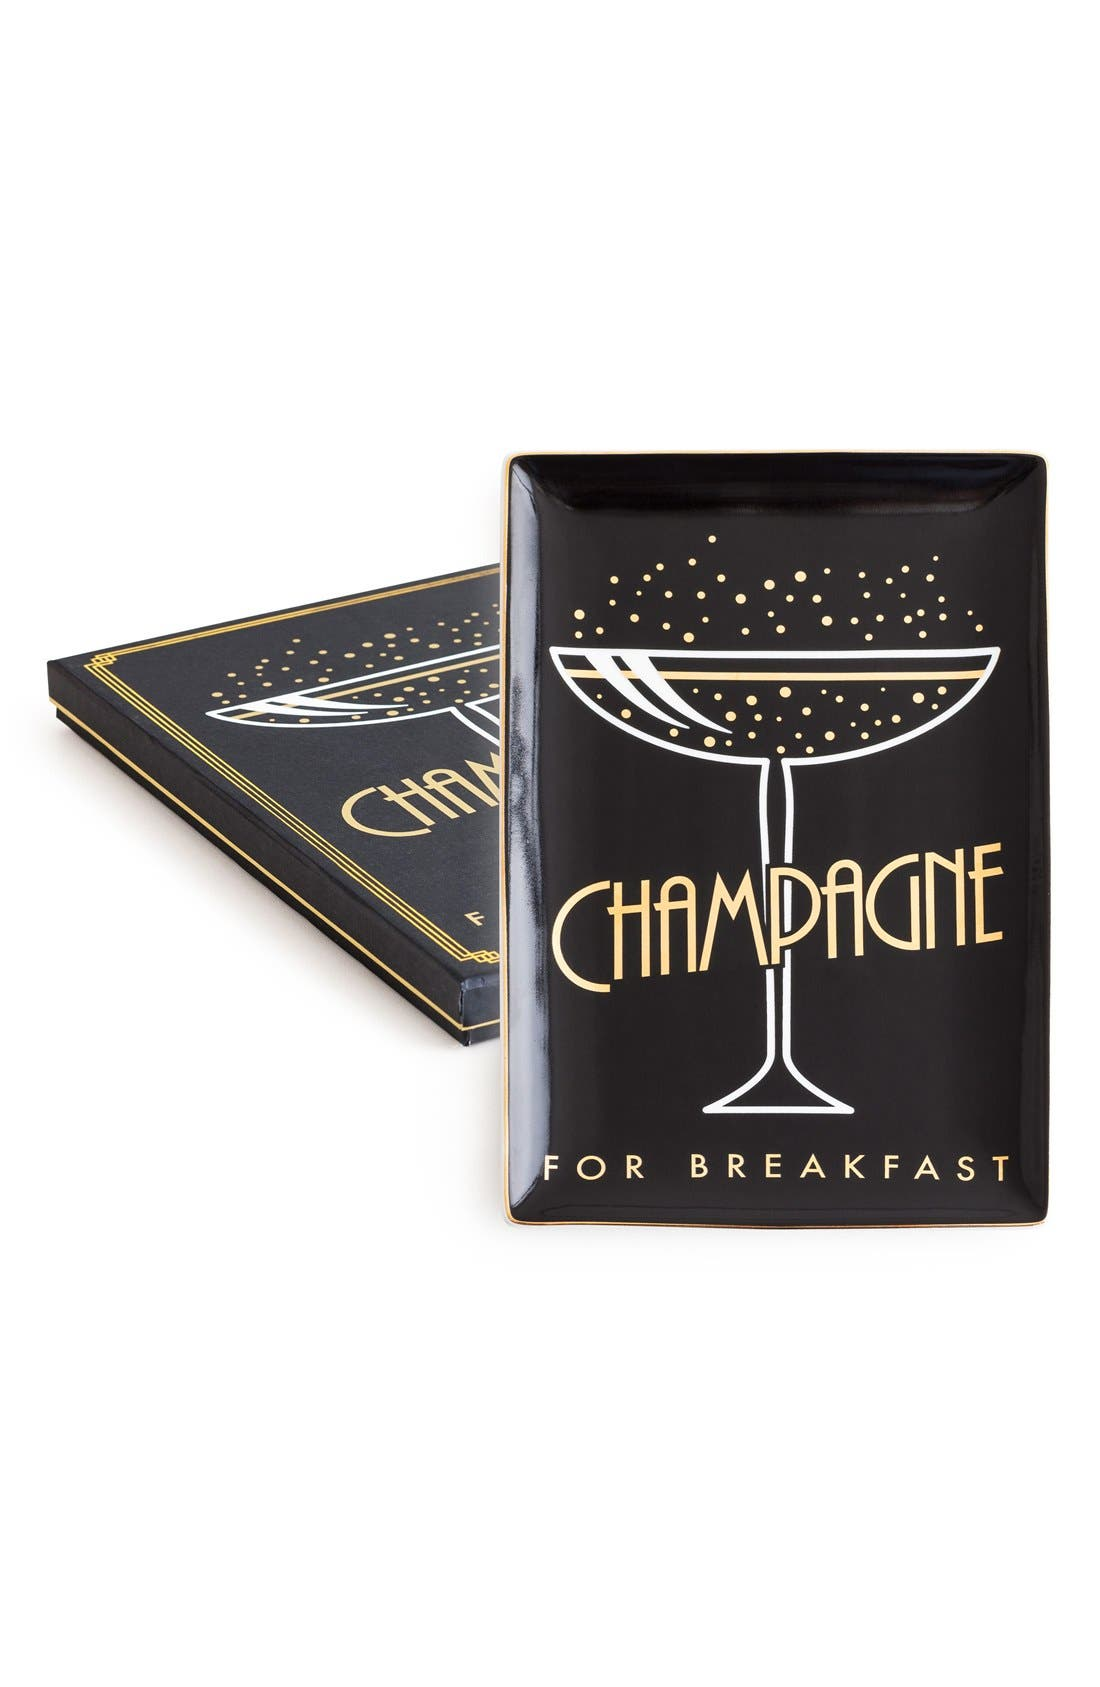 Main Image - Rosanna Champagne for Breakfast Porcelain Trinket Tray